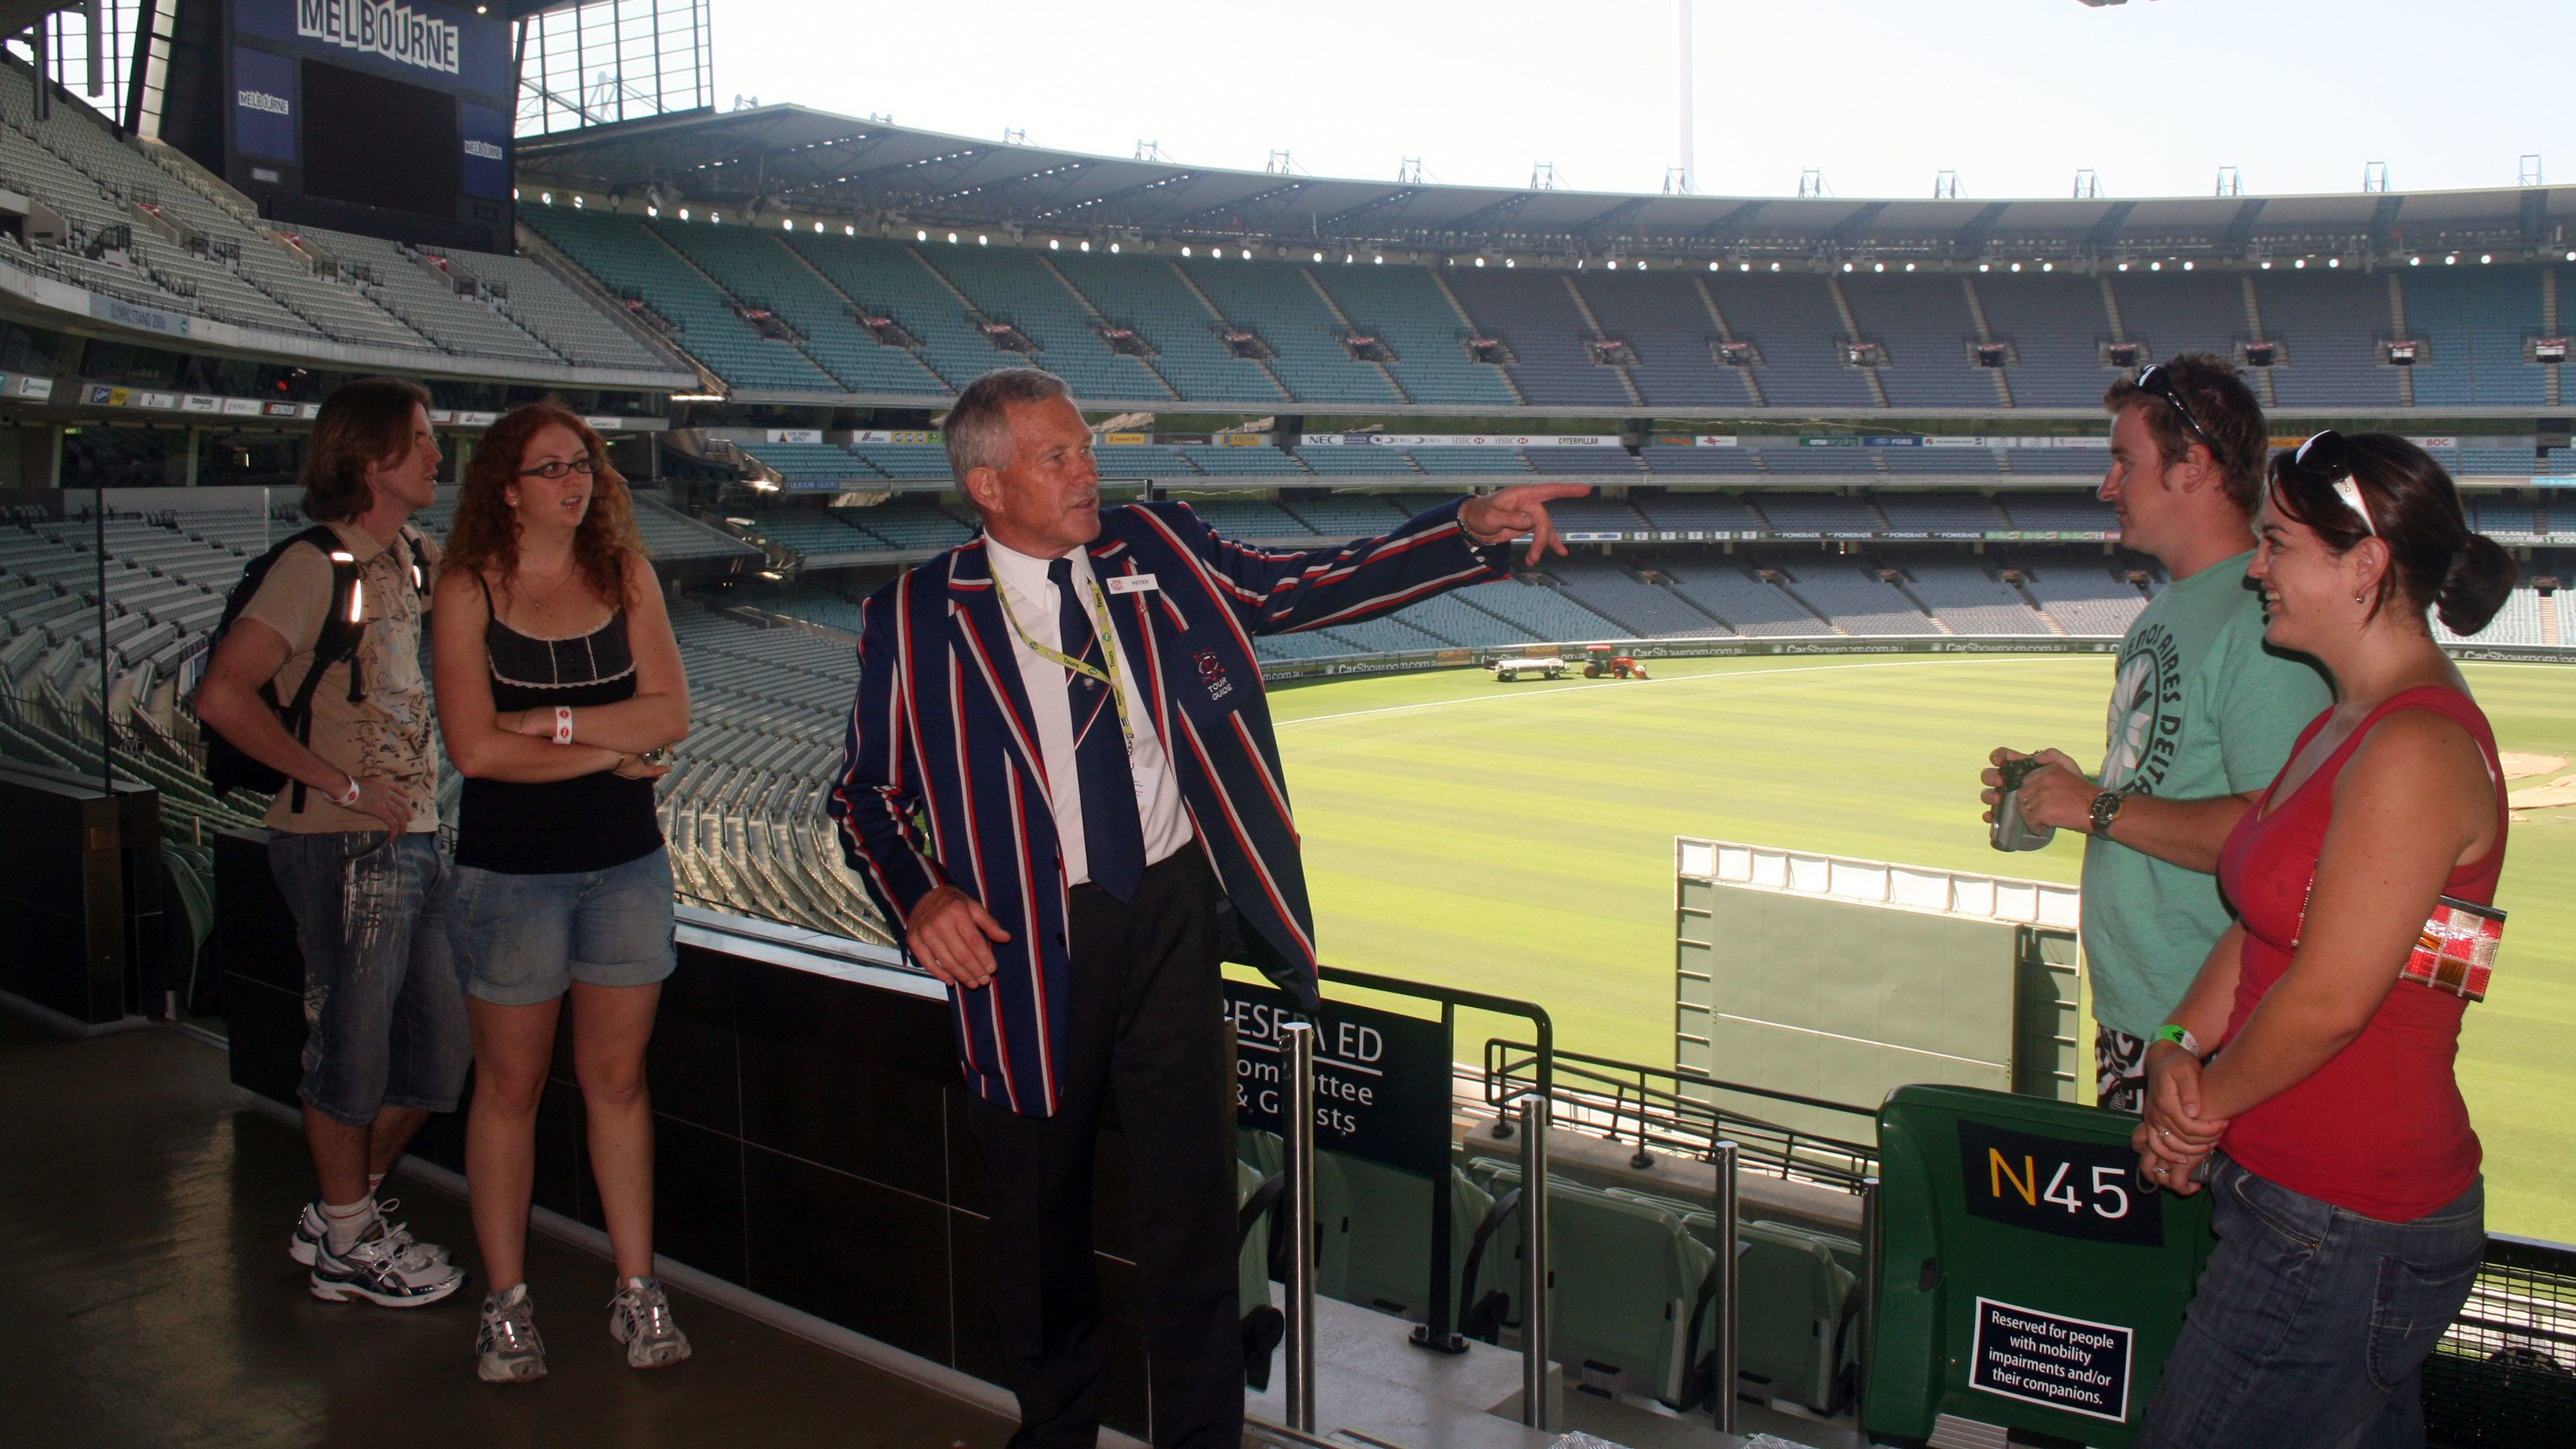 Tour guide talking to group at stadium in Melbourne